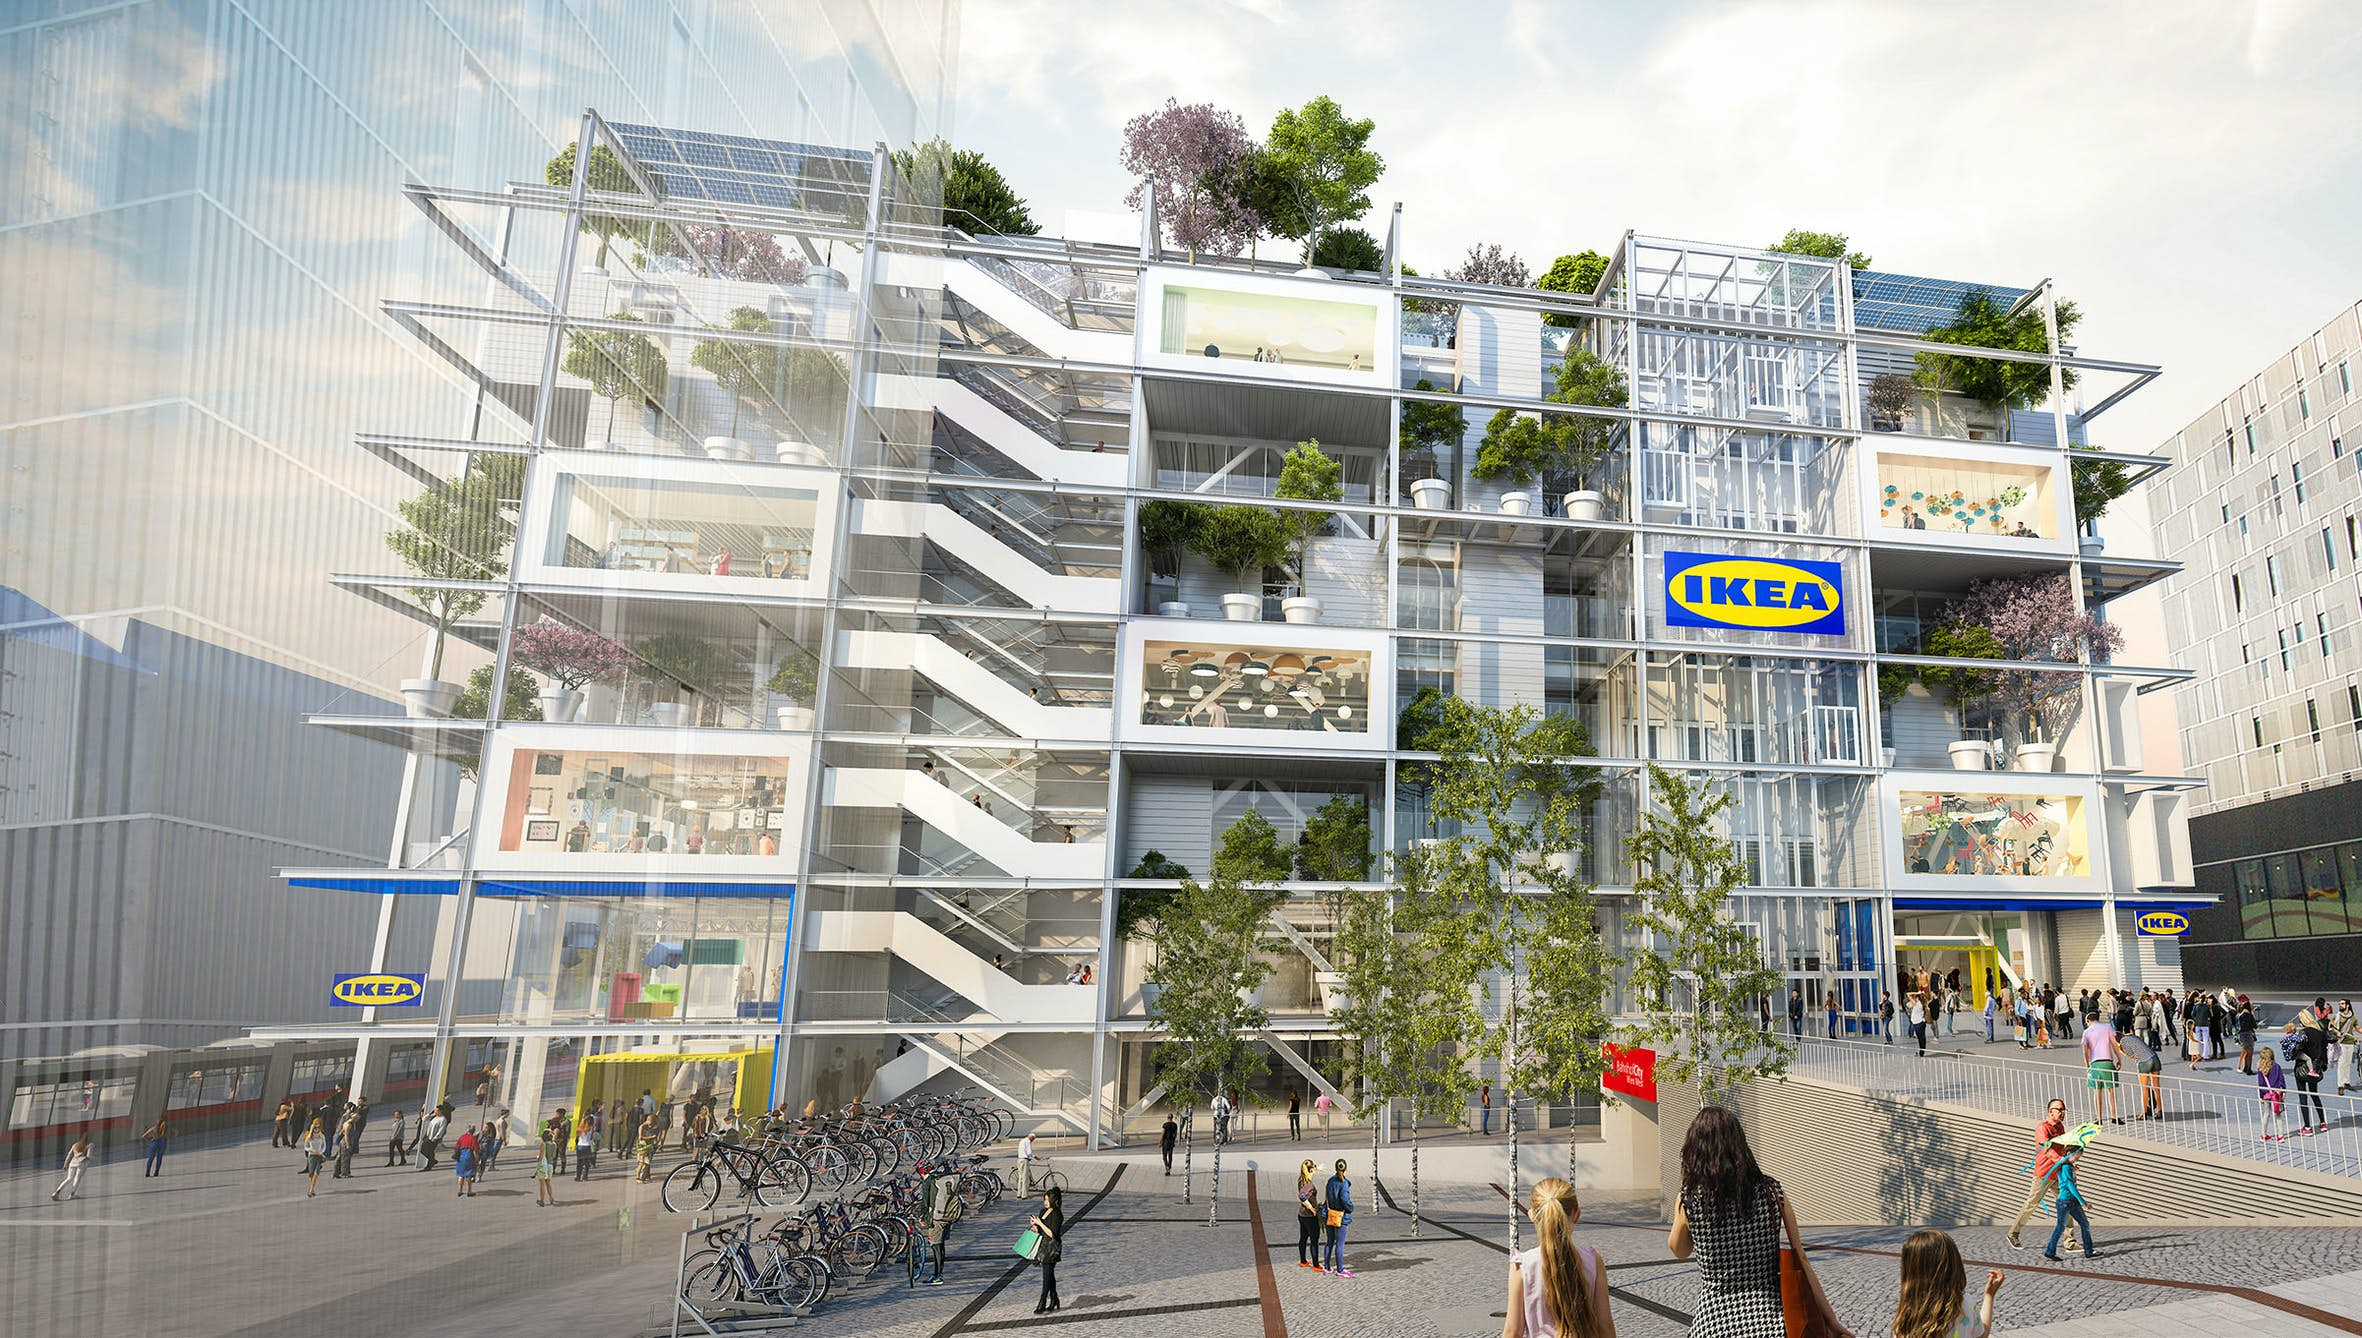 IKEA is building its greenest store to date in the centre of